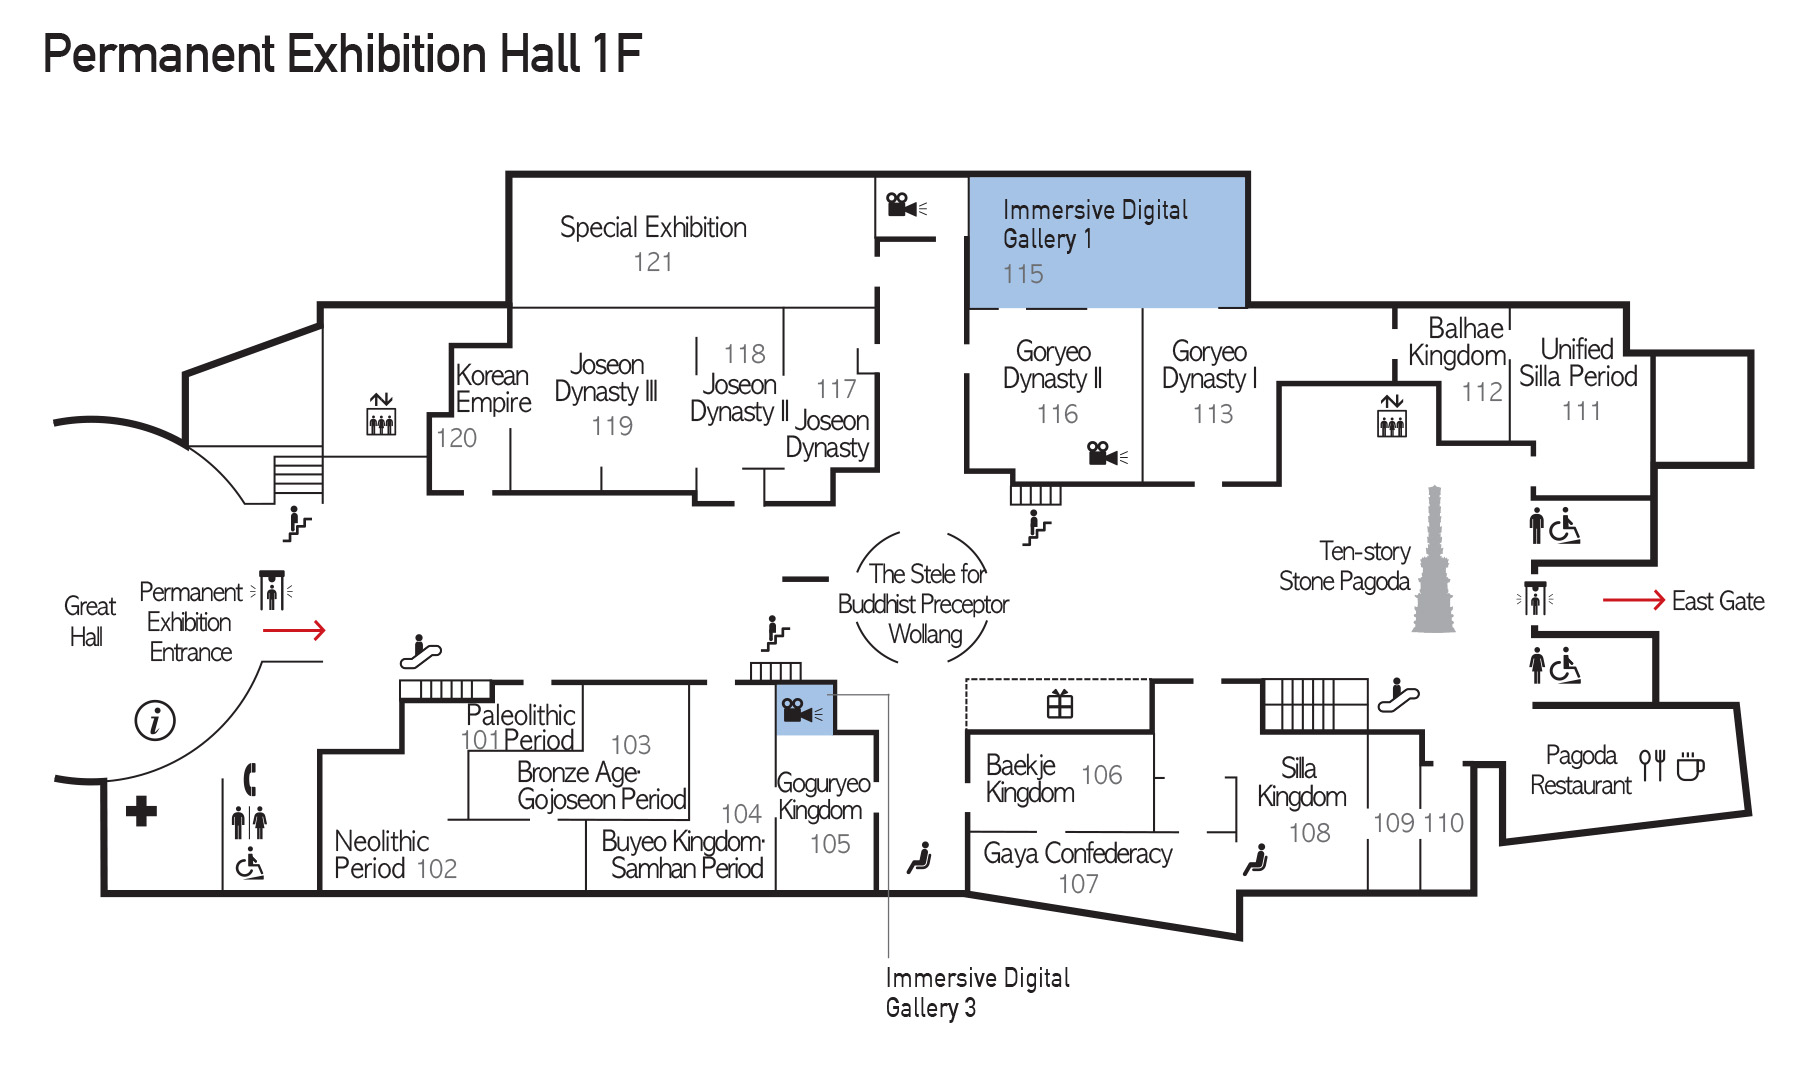 Location of Immersive Digital Gallery 3 on 1F of permanent exhibition hall